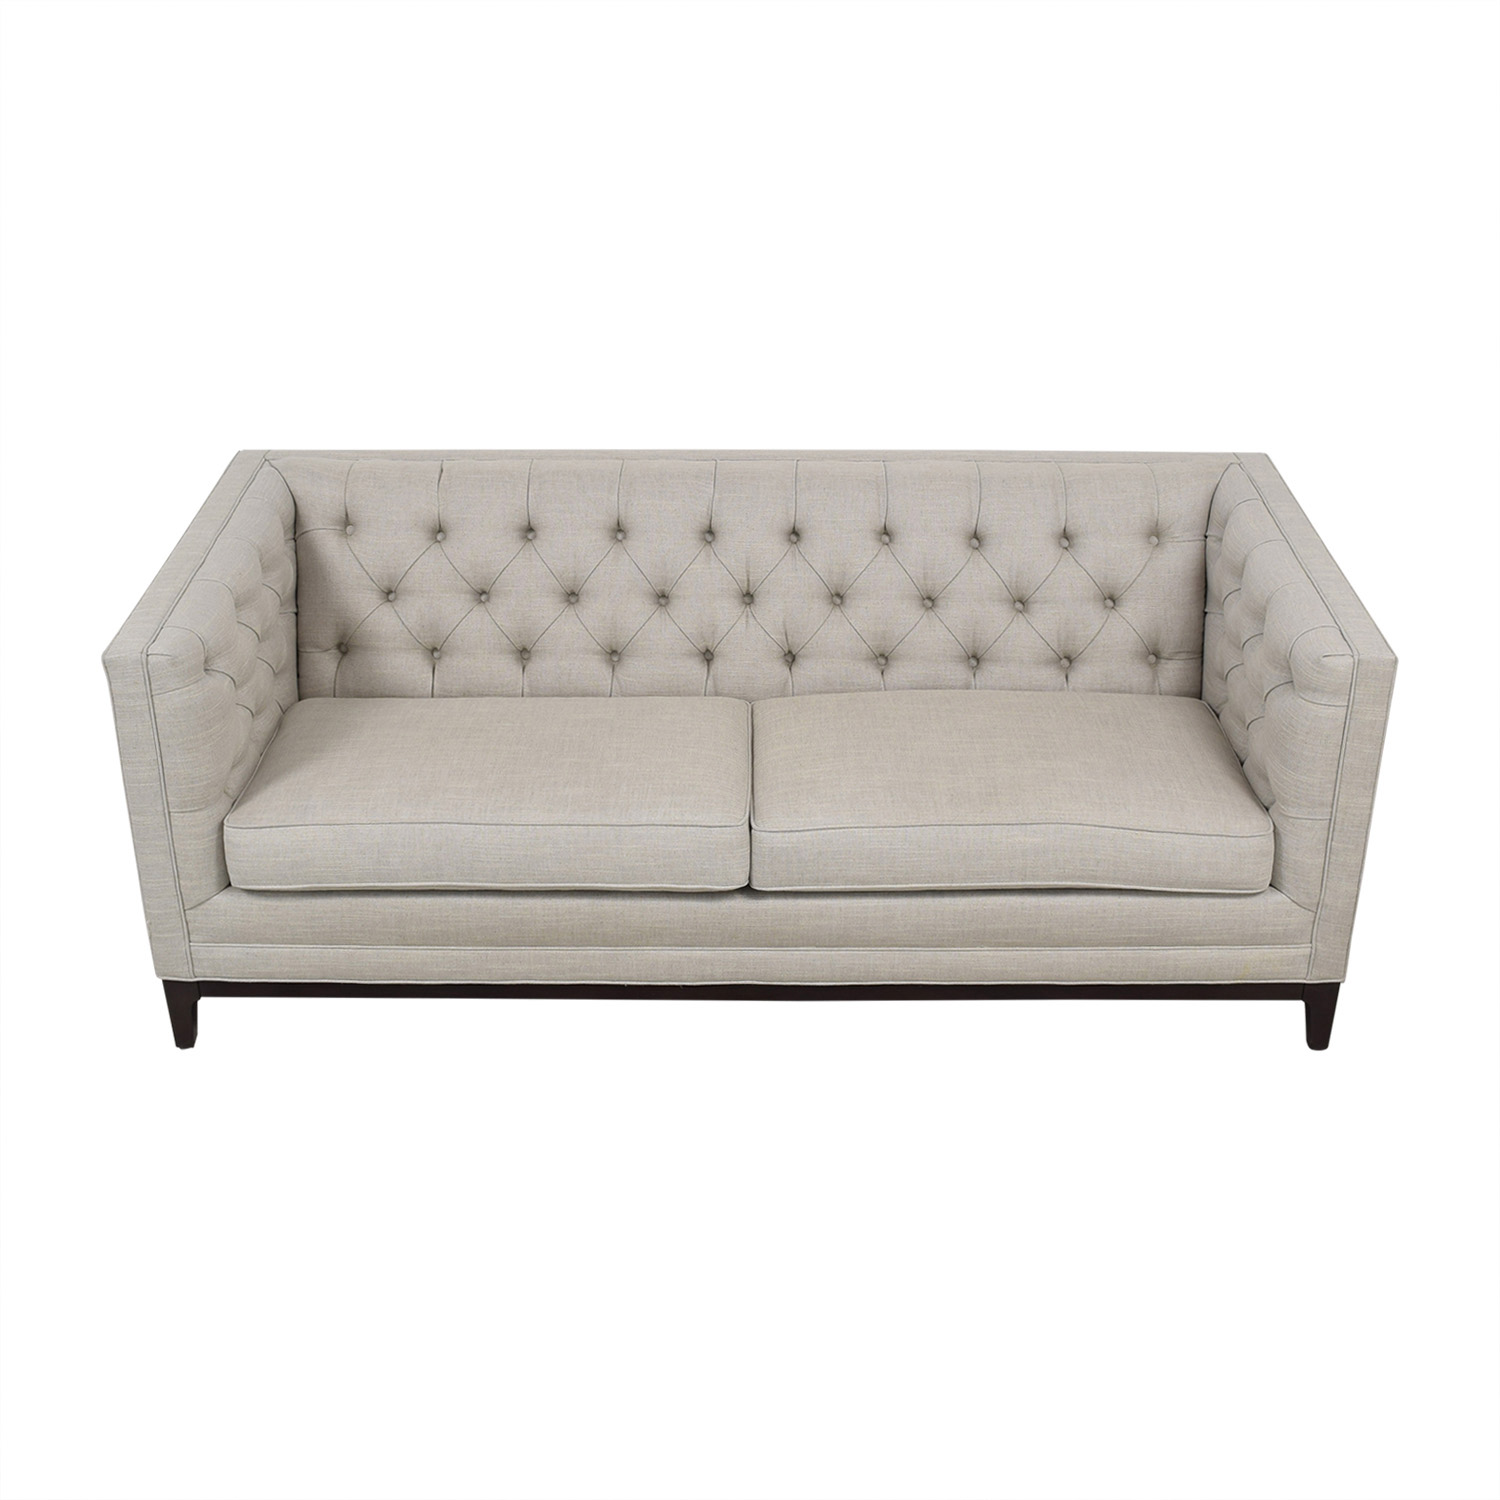 Awesome 62 Off Ethan Allen Ethan Allen Anderson Couch Sofas Gmtry Best Dining Table And Chair Ideas Images Gmtryco